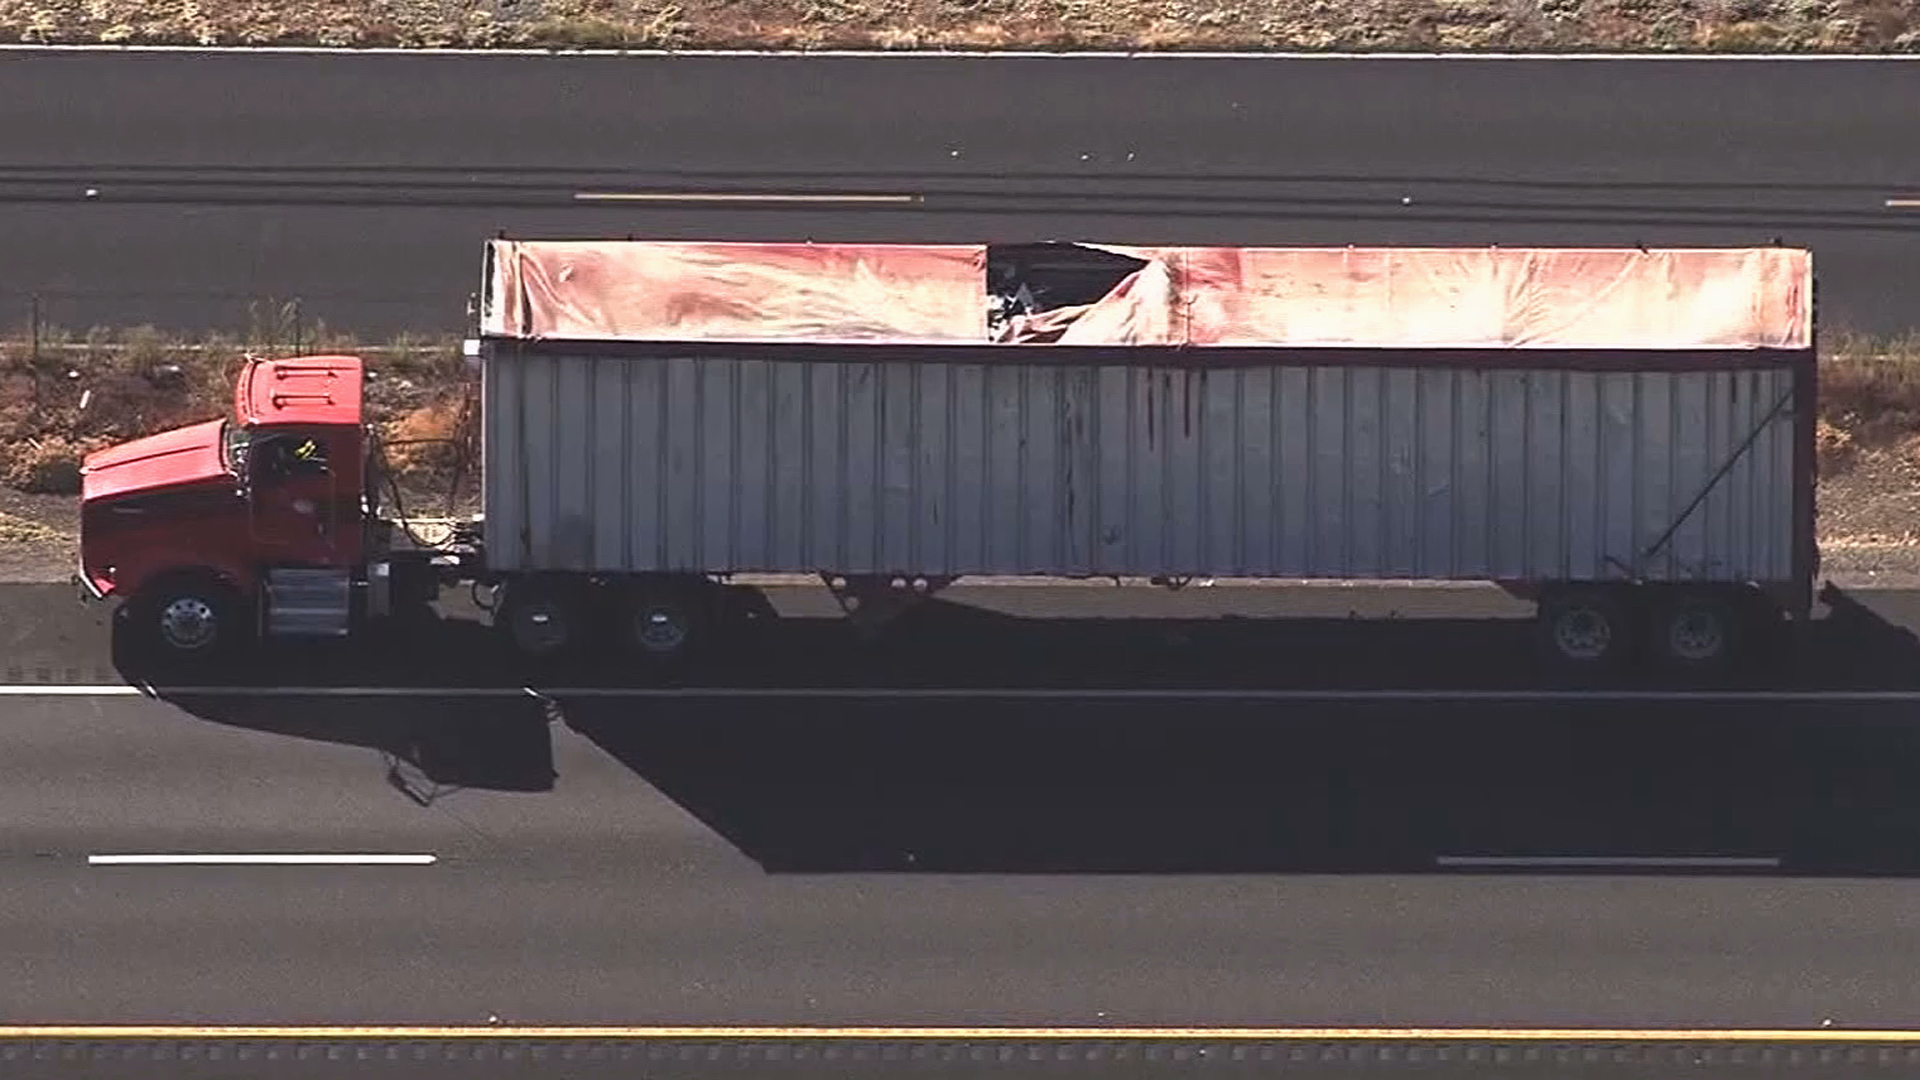 A skydiver was killed Thursday after landing on southbound Highway 99 in Northern California and being struck by a big rig, authorities said. (Credit: KCRA)